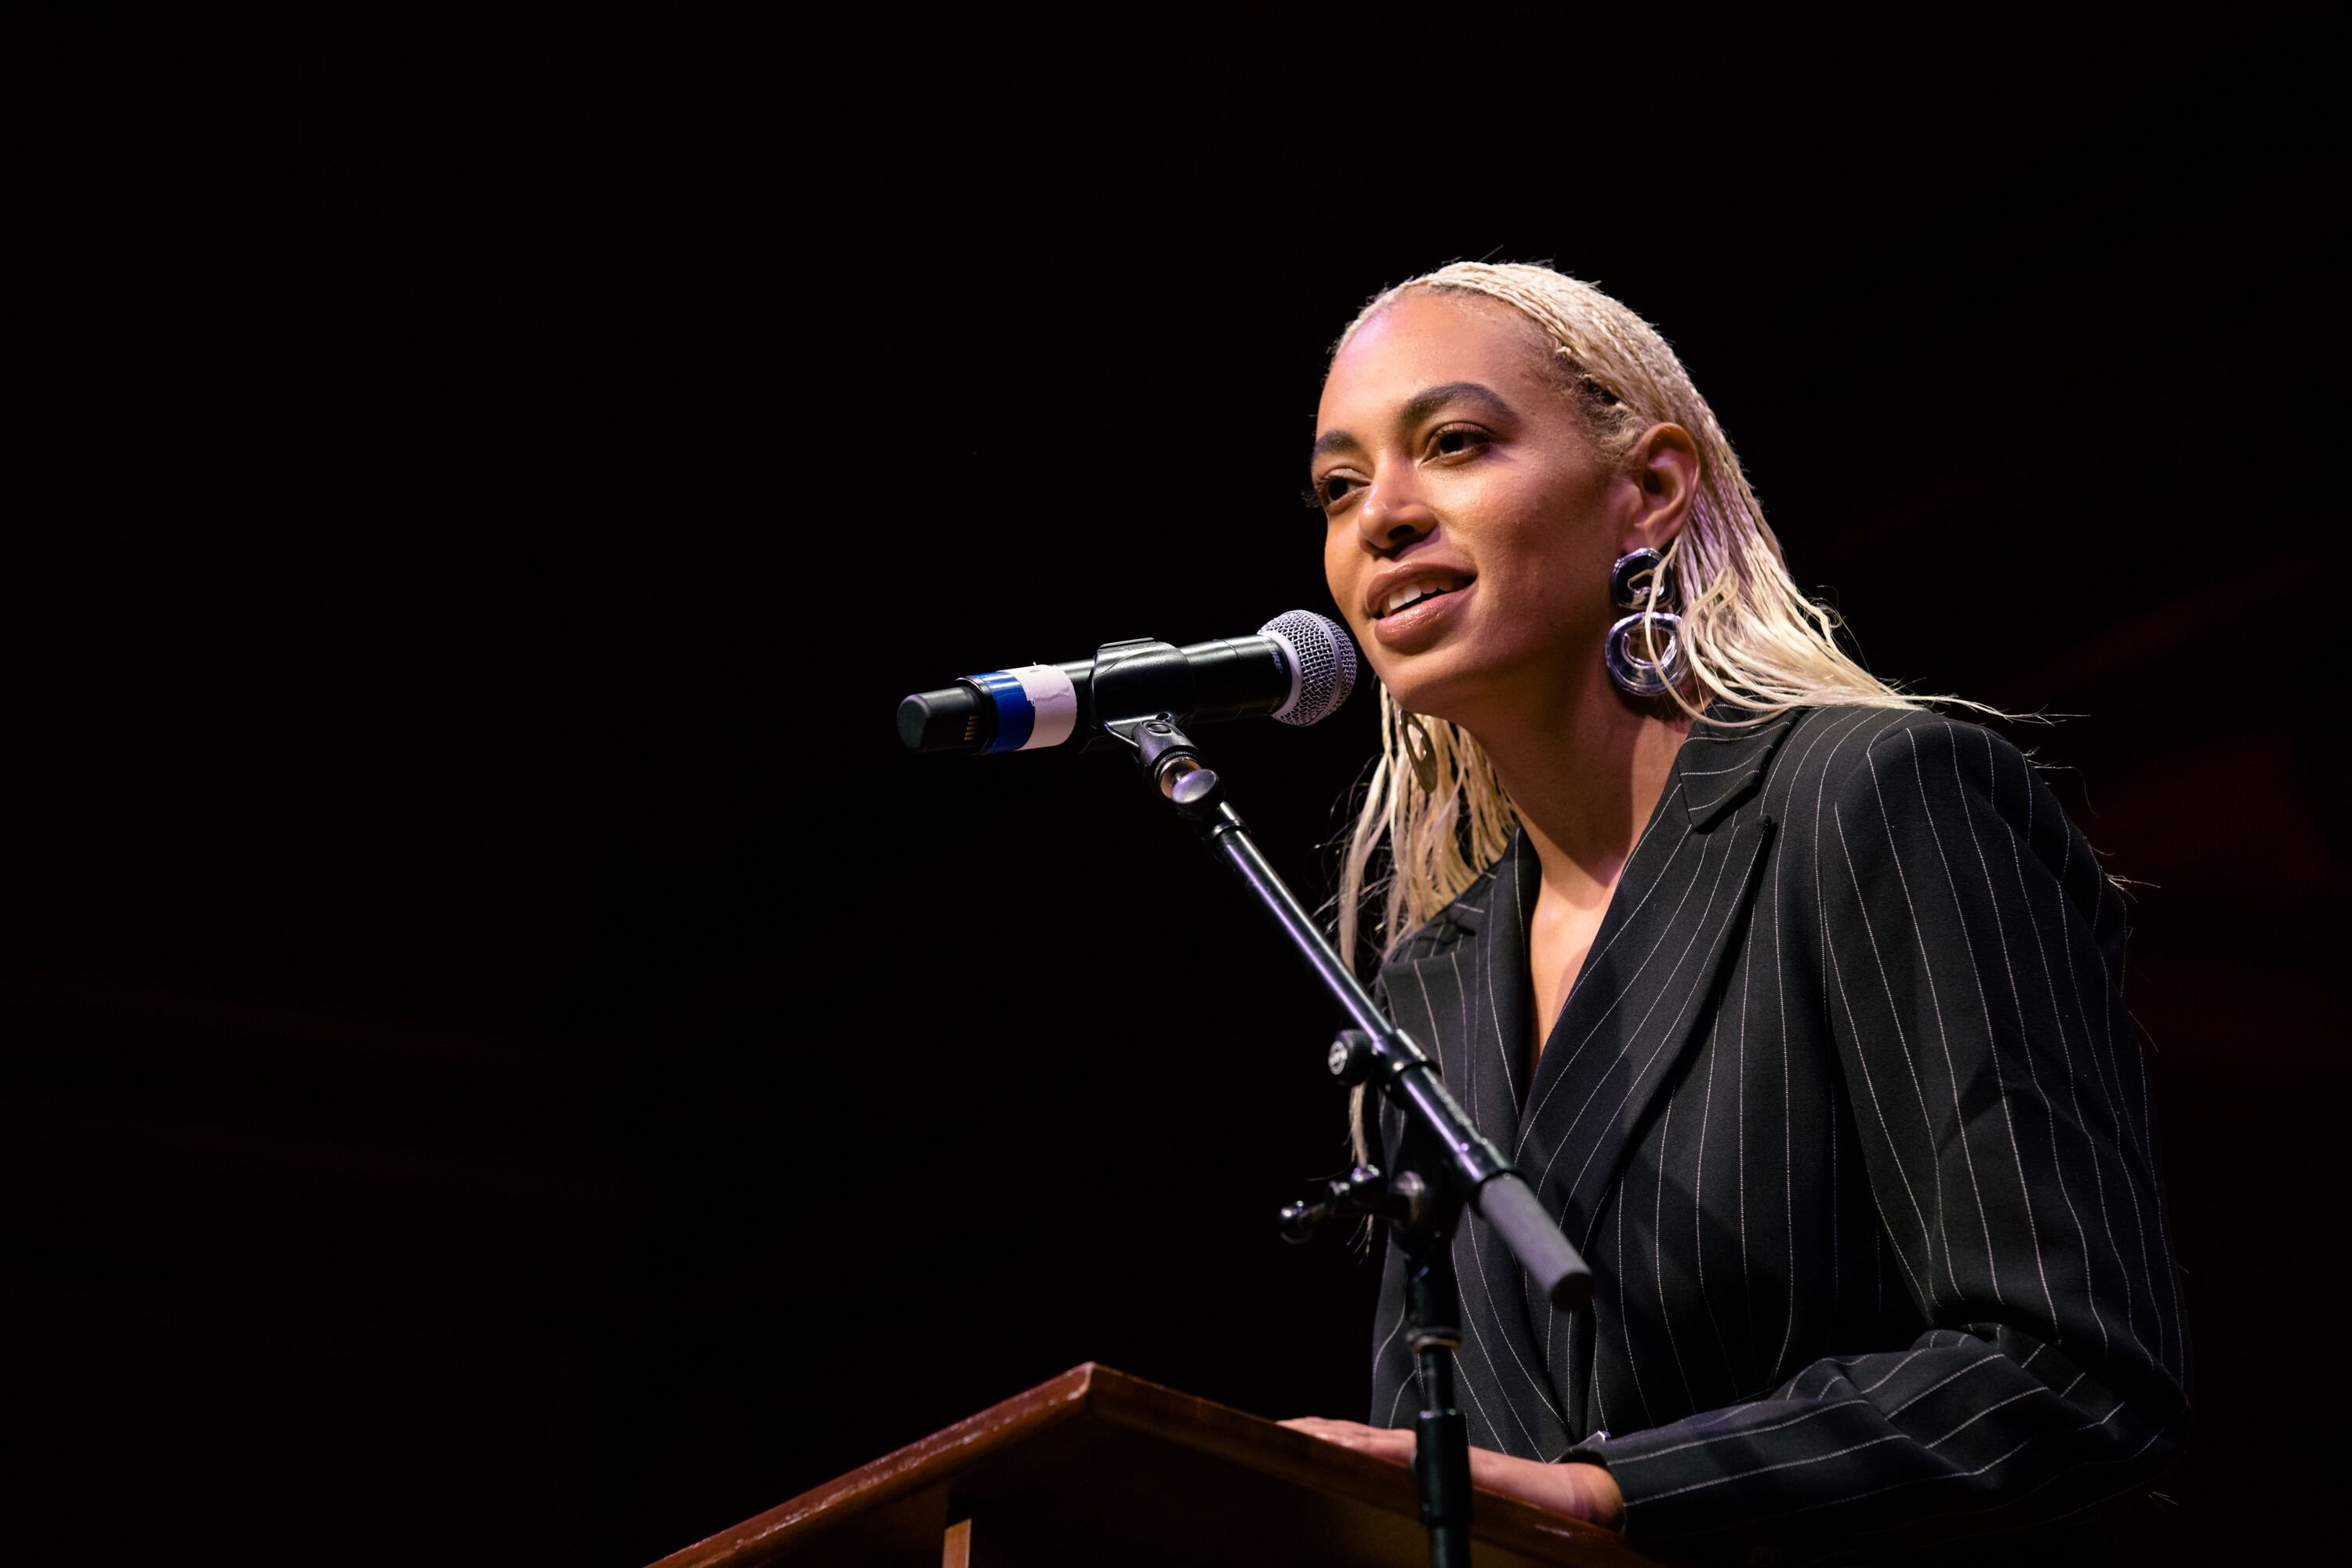 Solange Knowles at a speaking engagement | Source: Getty Images/GlobalImagesUkraine